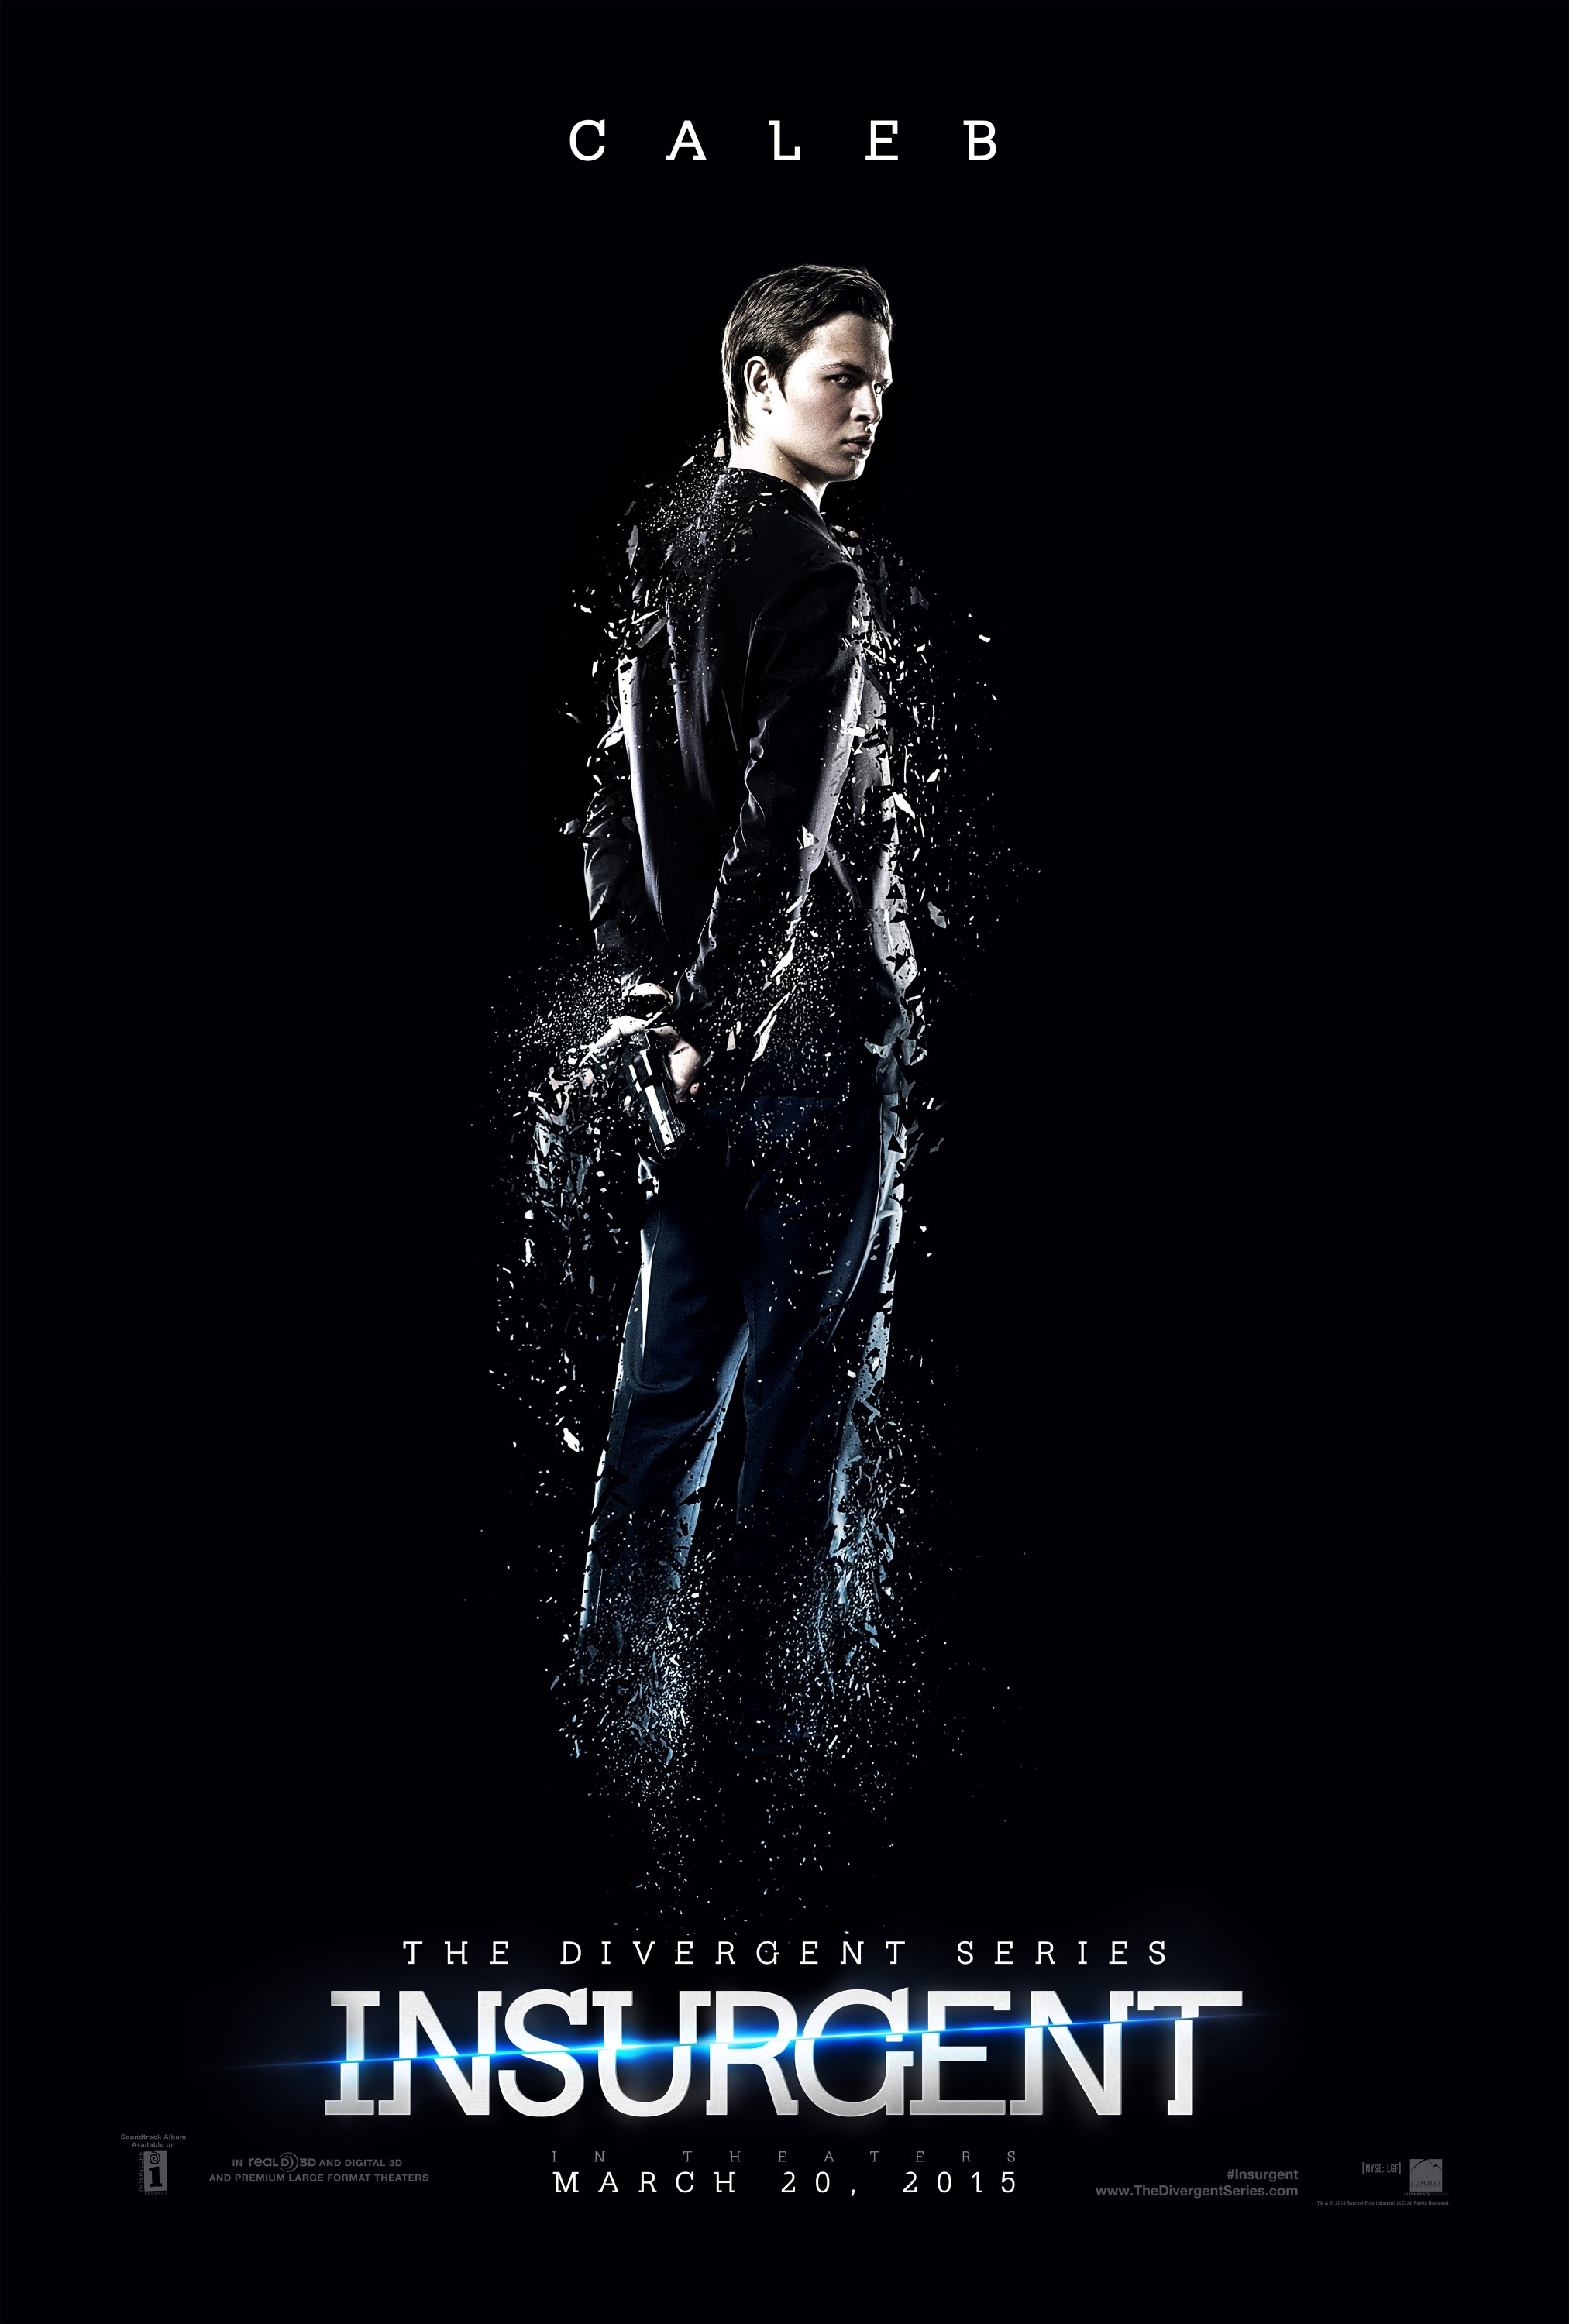 Insurgent-Official Poster XXLG-30OUTUBRO2014-02